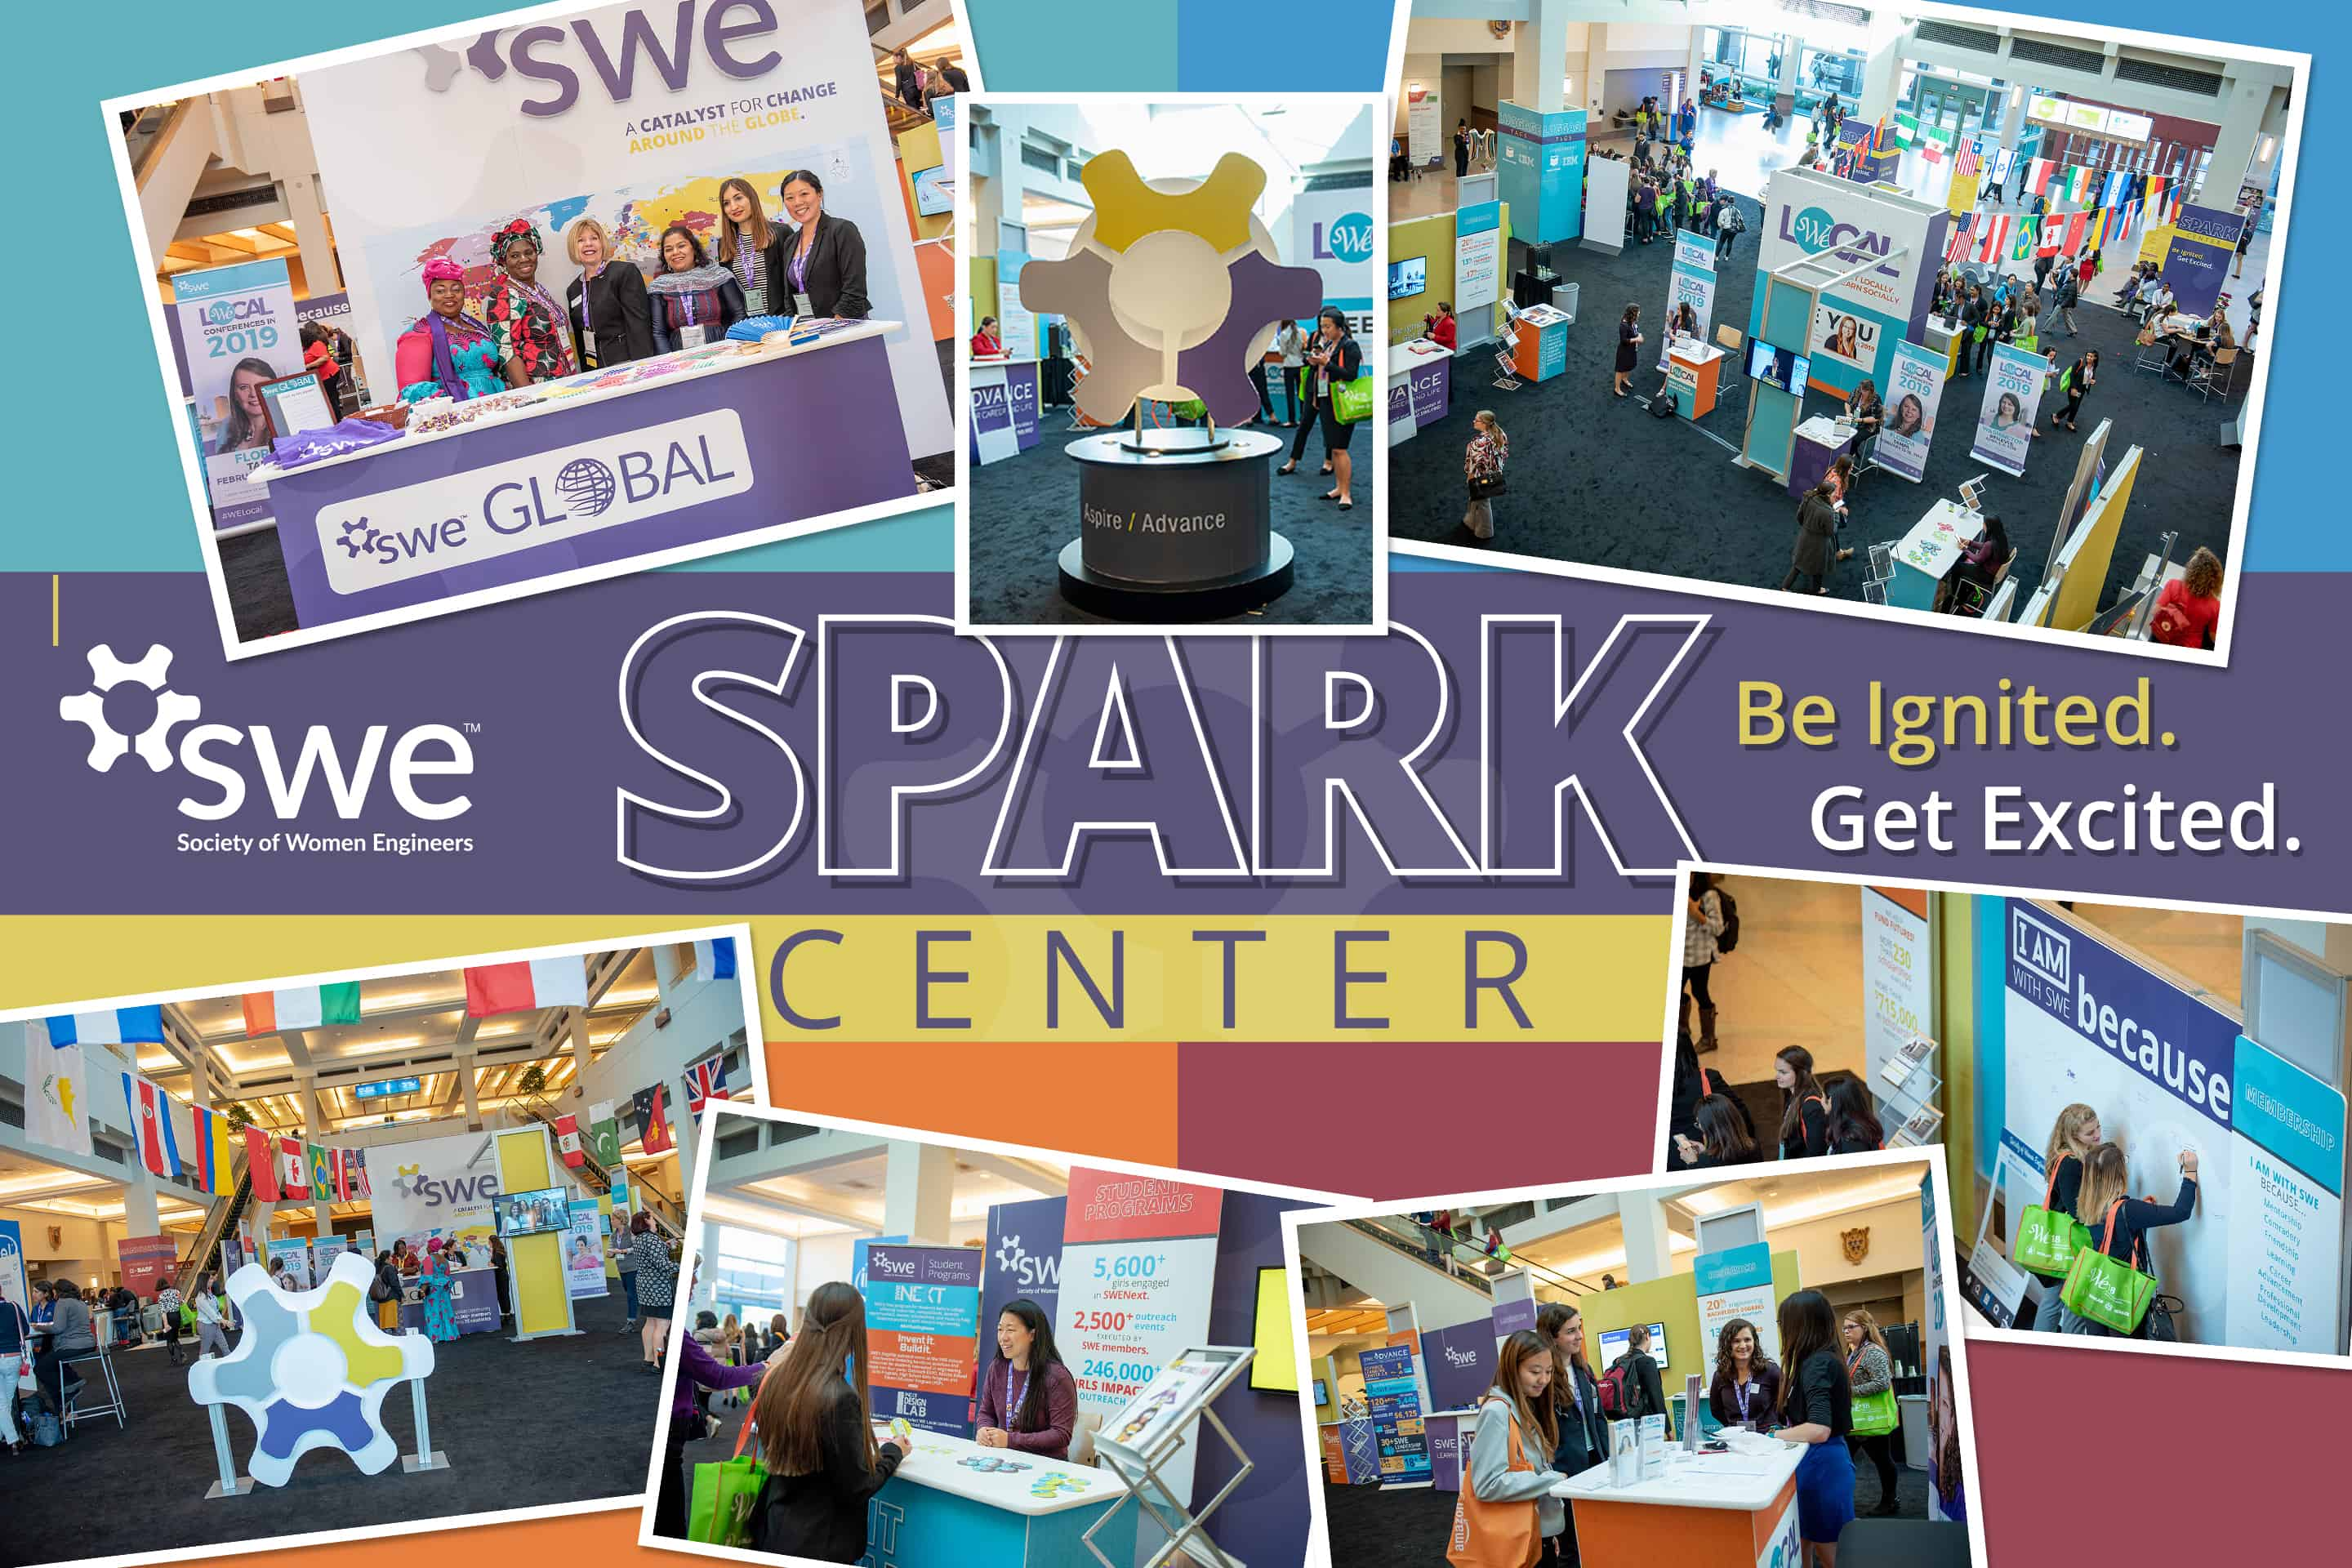 Event Marketing Society of Women Engineers WE conference Spark Member Center